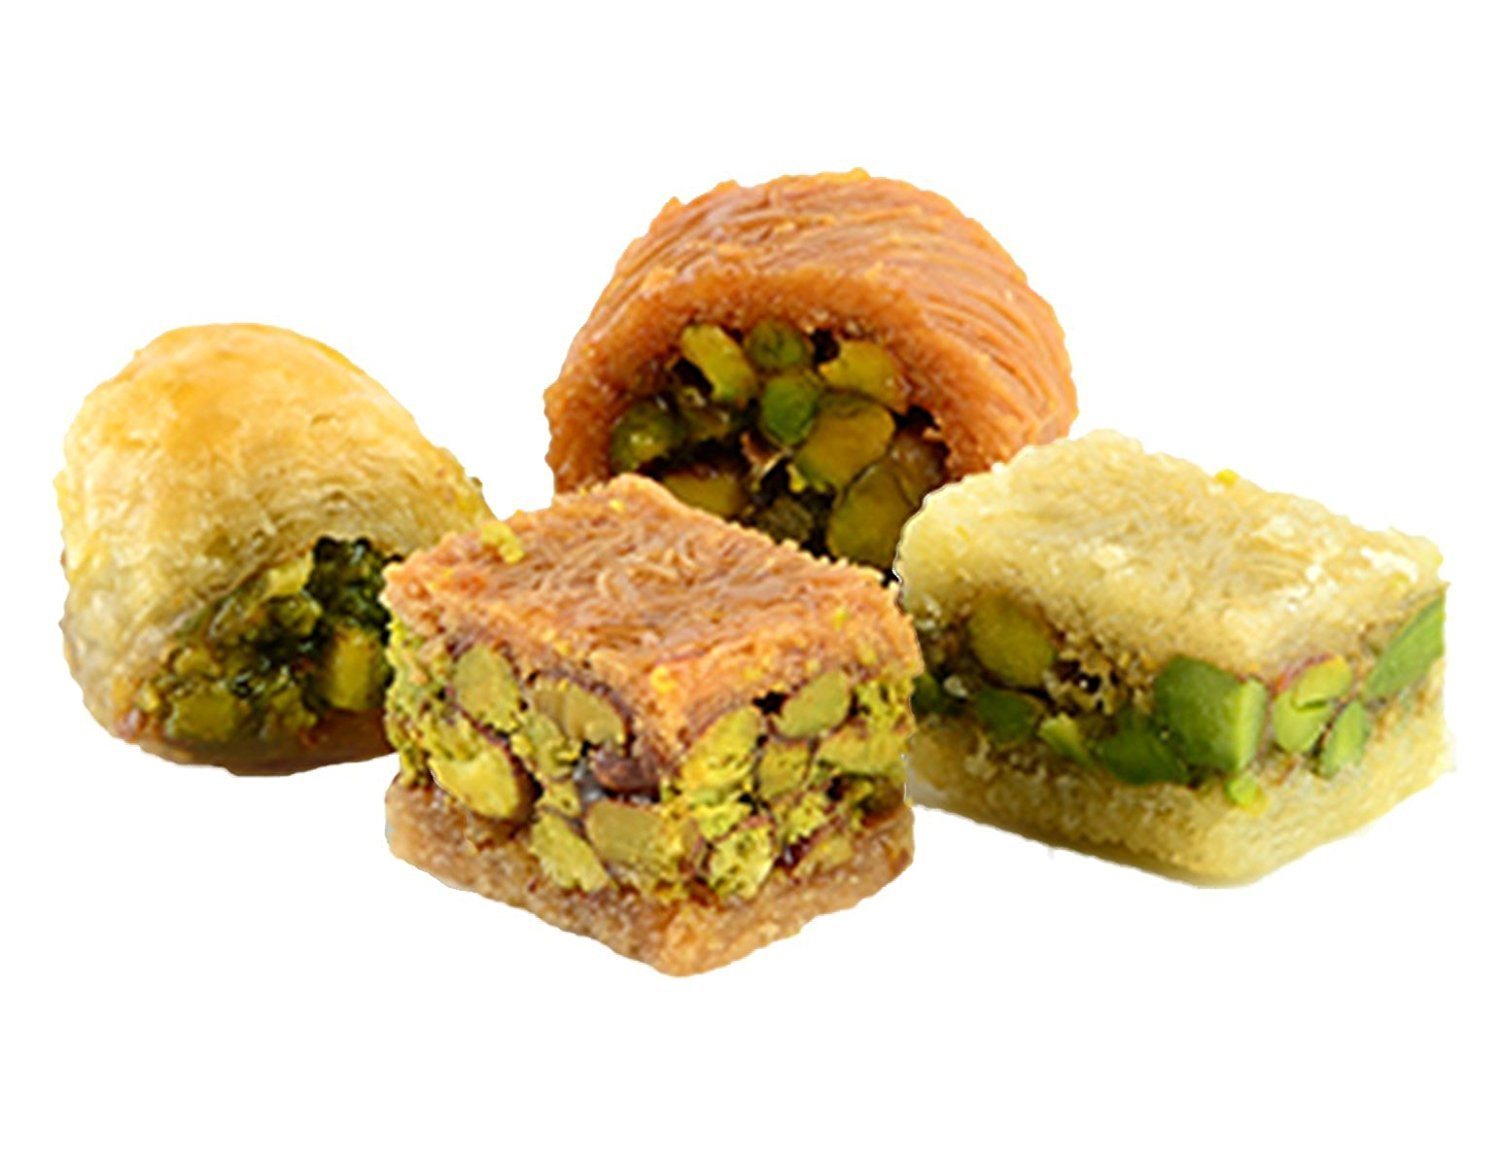 Assorted Baklava Sweets w/Pistachio (20 Oz) : 23-25 Pcs small cut - Imported Fresh from Lebanon - THE ORIGINAL Recipe From Middle East - Assorted Baklava Pastry Pistachios (20 Oz) by Hallab 1881 (Image #2)